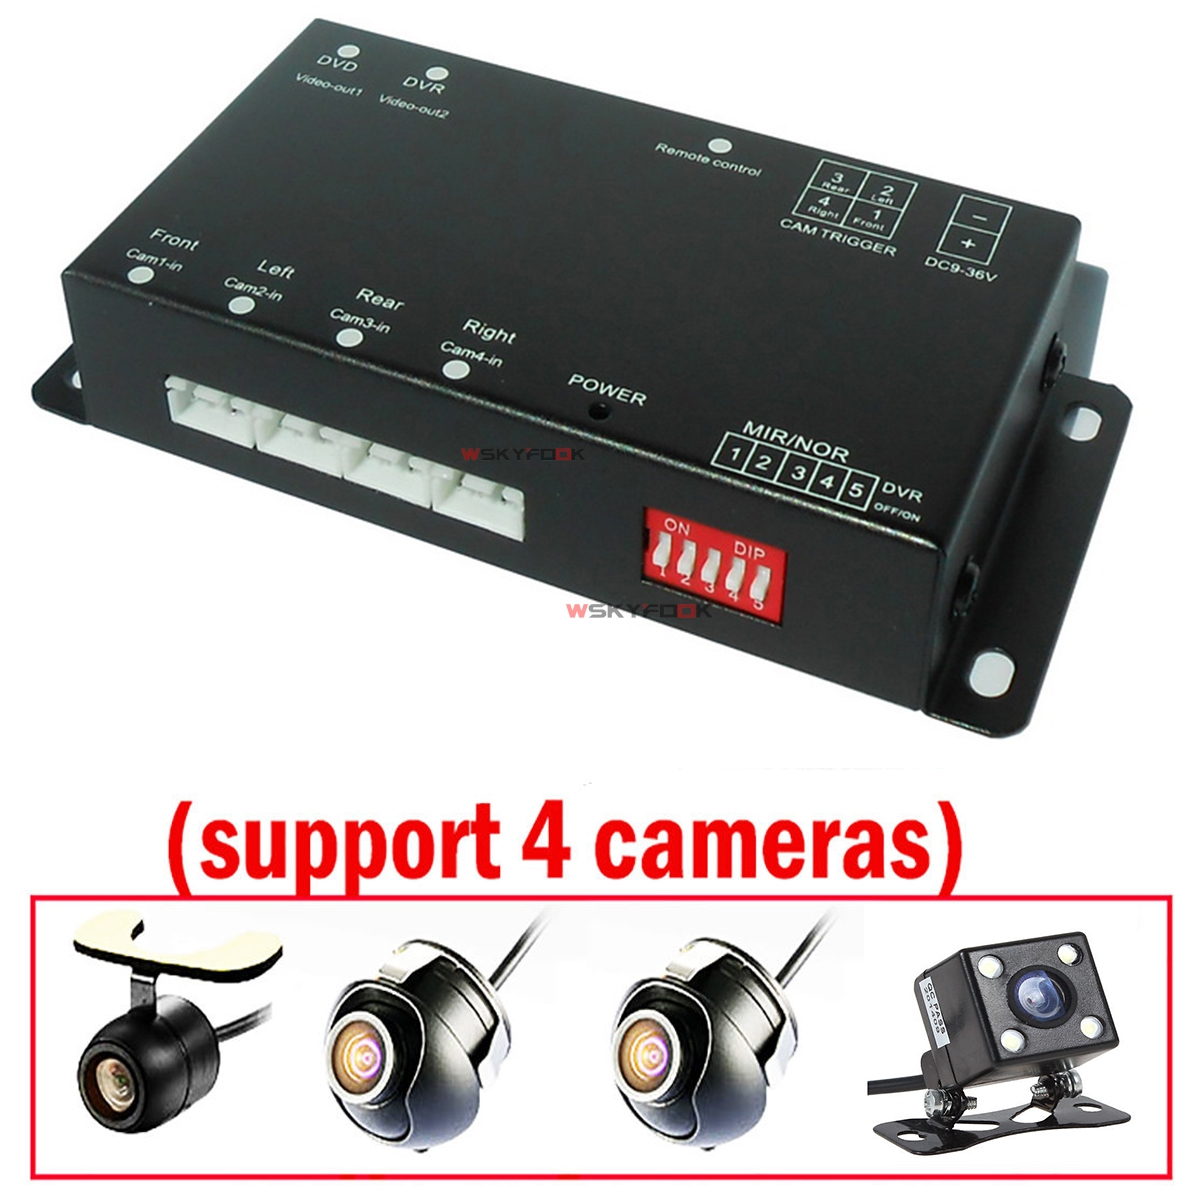 360 Degree Car Parking Front/Left/Right/Rear View 4 Cameras Split image Screen Video Monitor W/O Cables